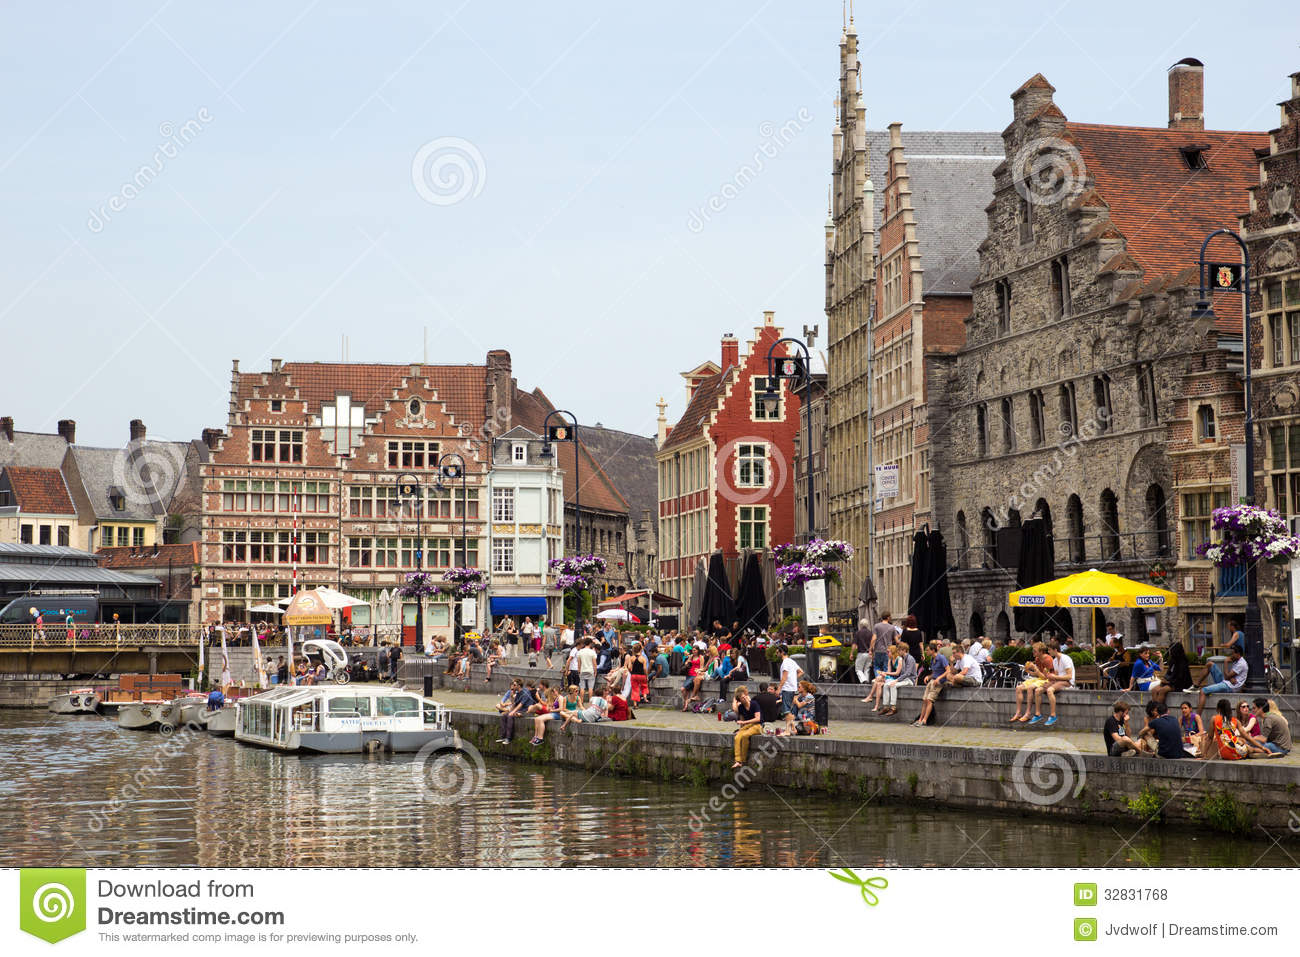 Ghent, Belgium: description, history of the city, sights and interesting facts 29